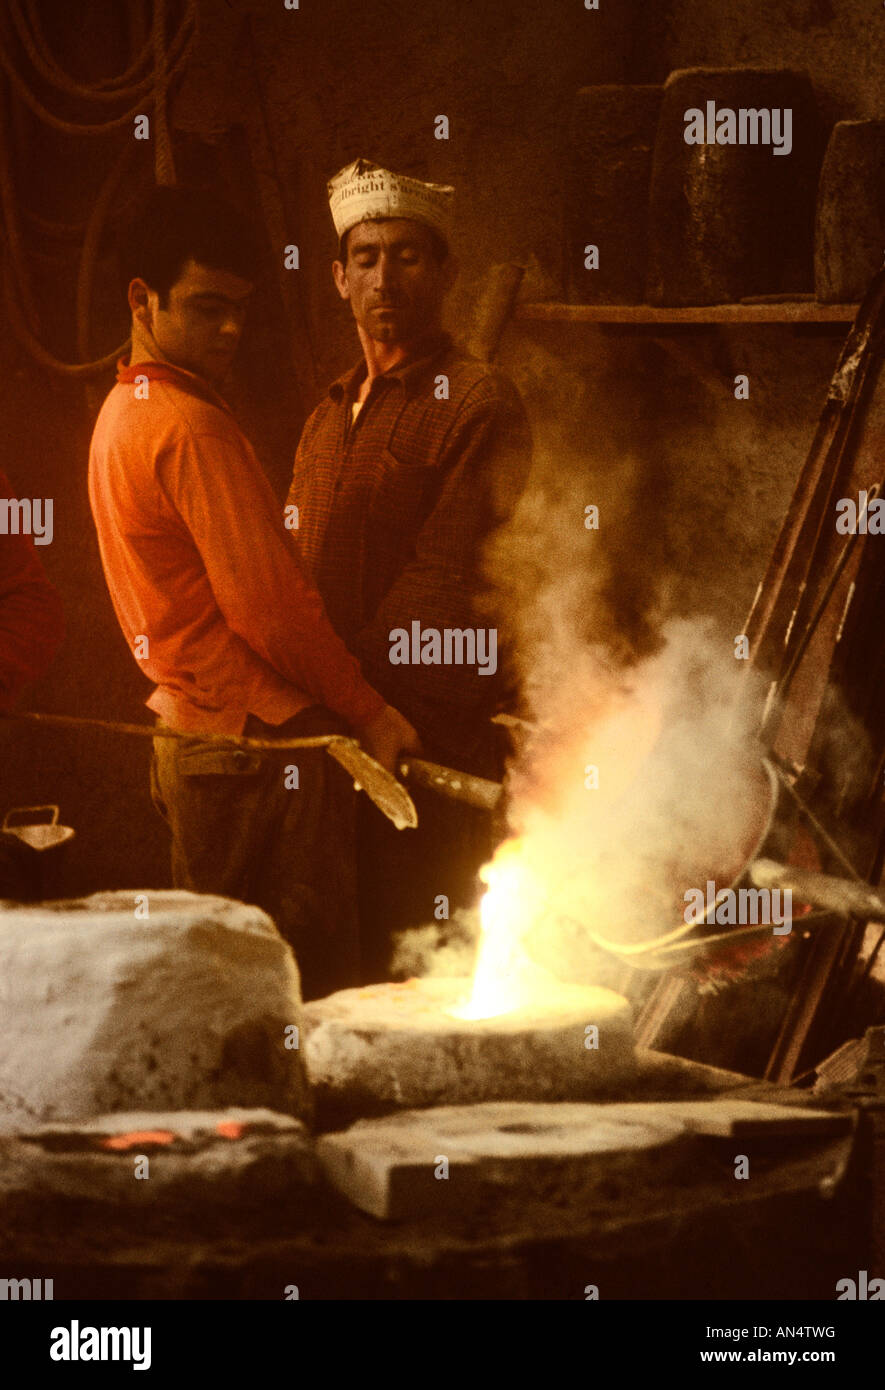 men-pouring-bronze-at-a-foundry-in-rome-